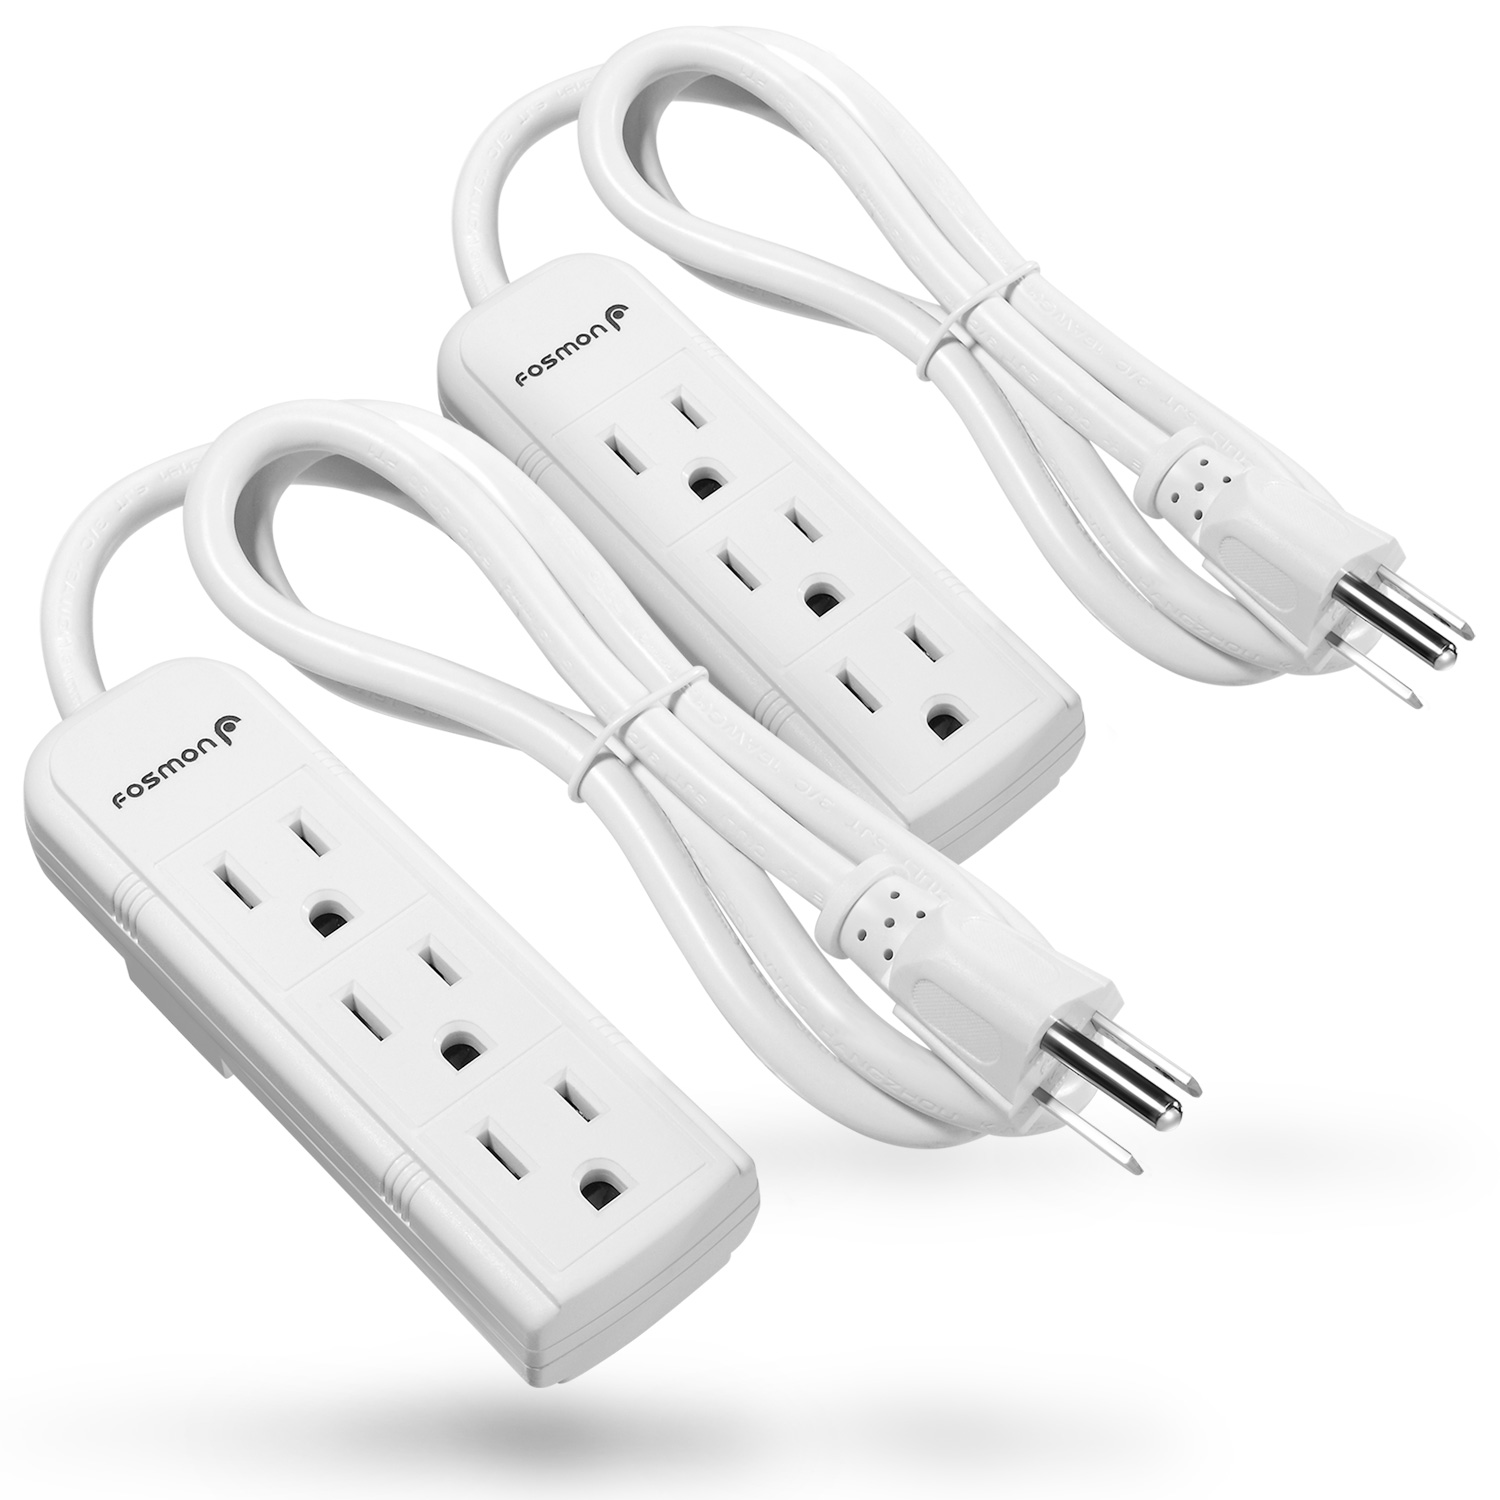 Fosmon 3 Outlet Power Strip Heavy Duty with 3FT Extension Cord, 3 Prong Grounded AC Plug, UL Listed (White) (2Pack)